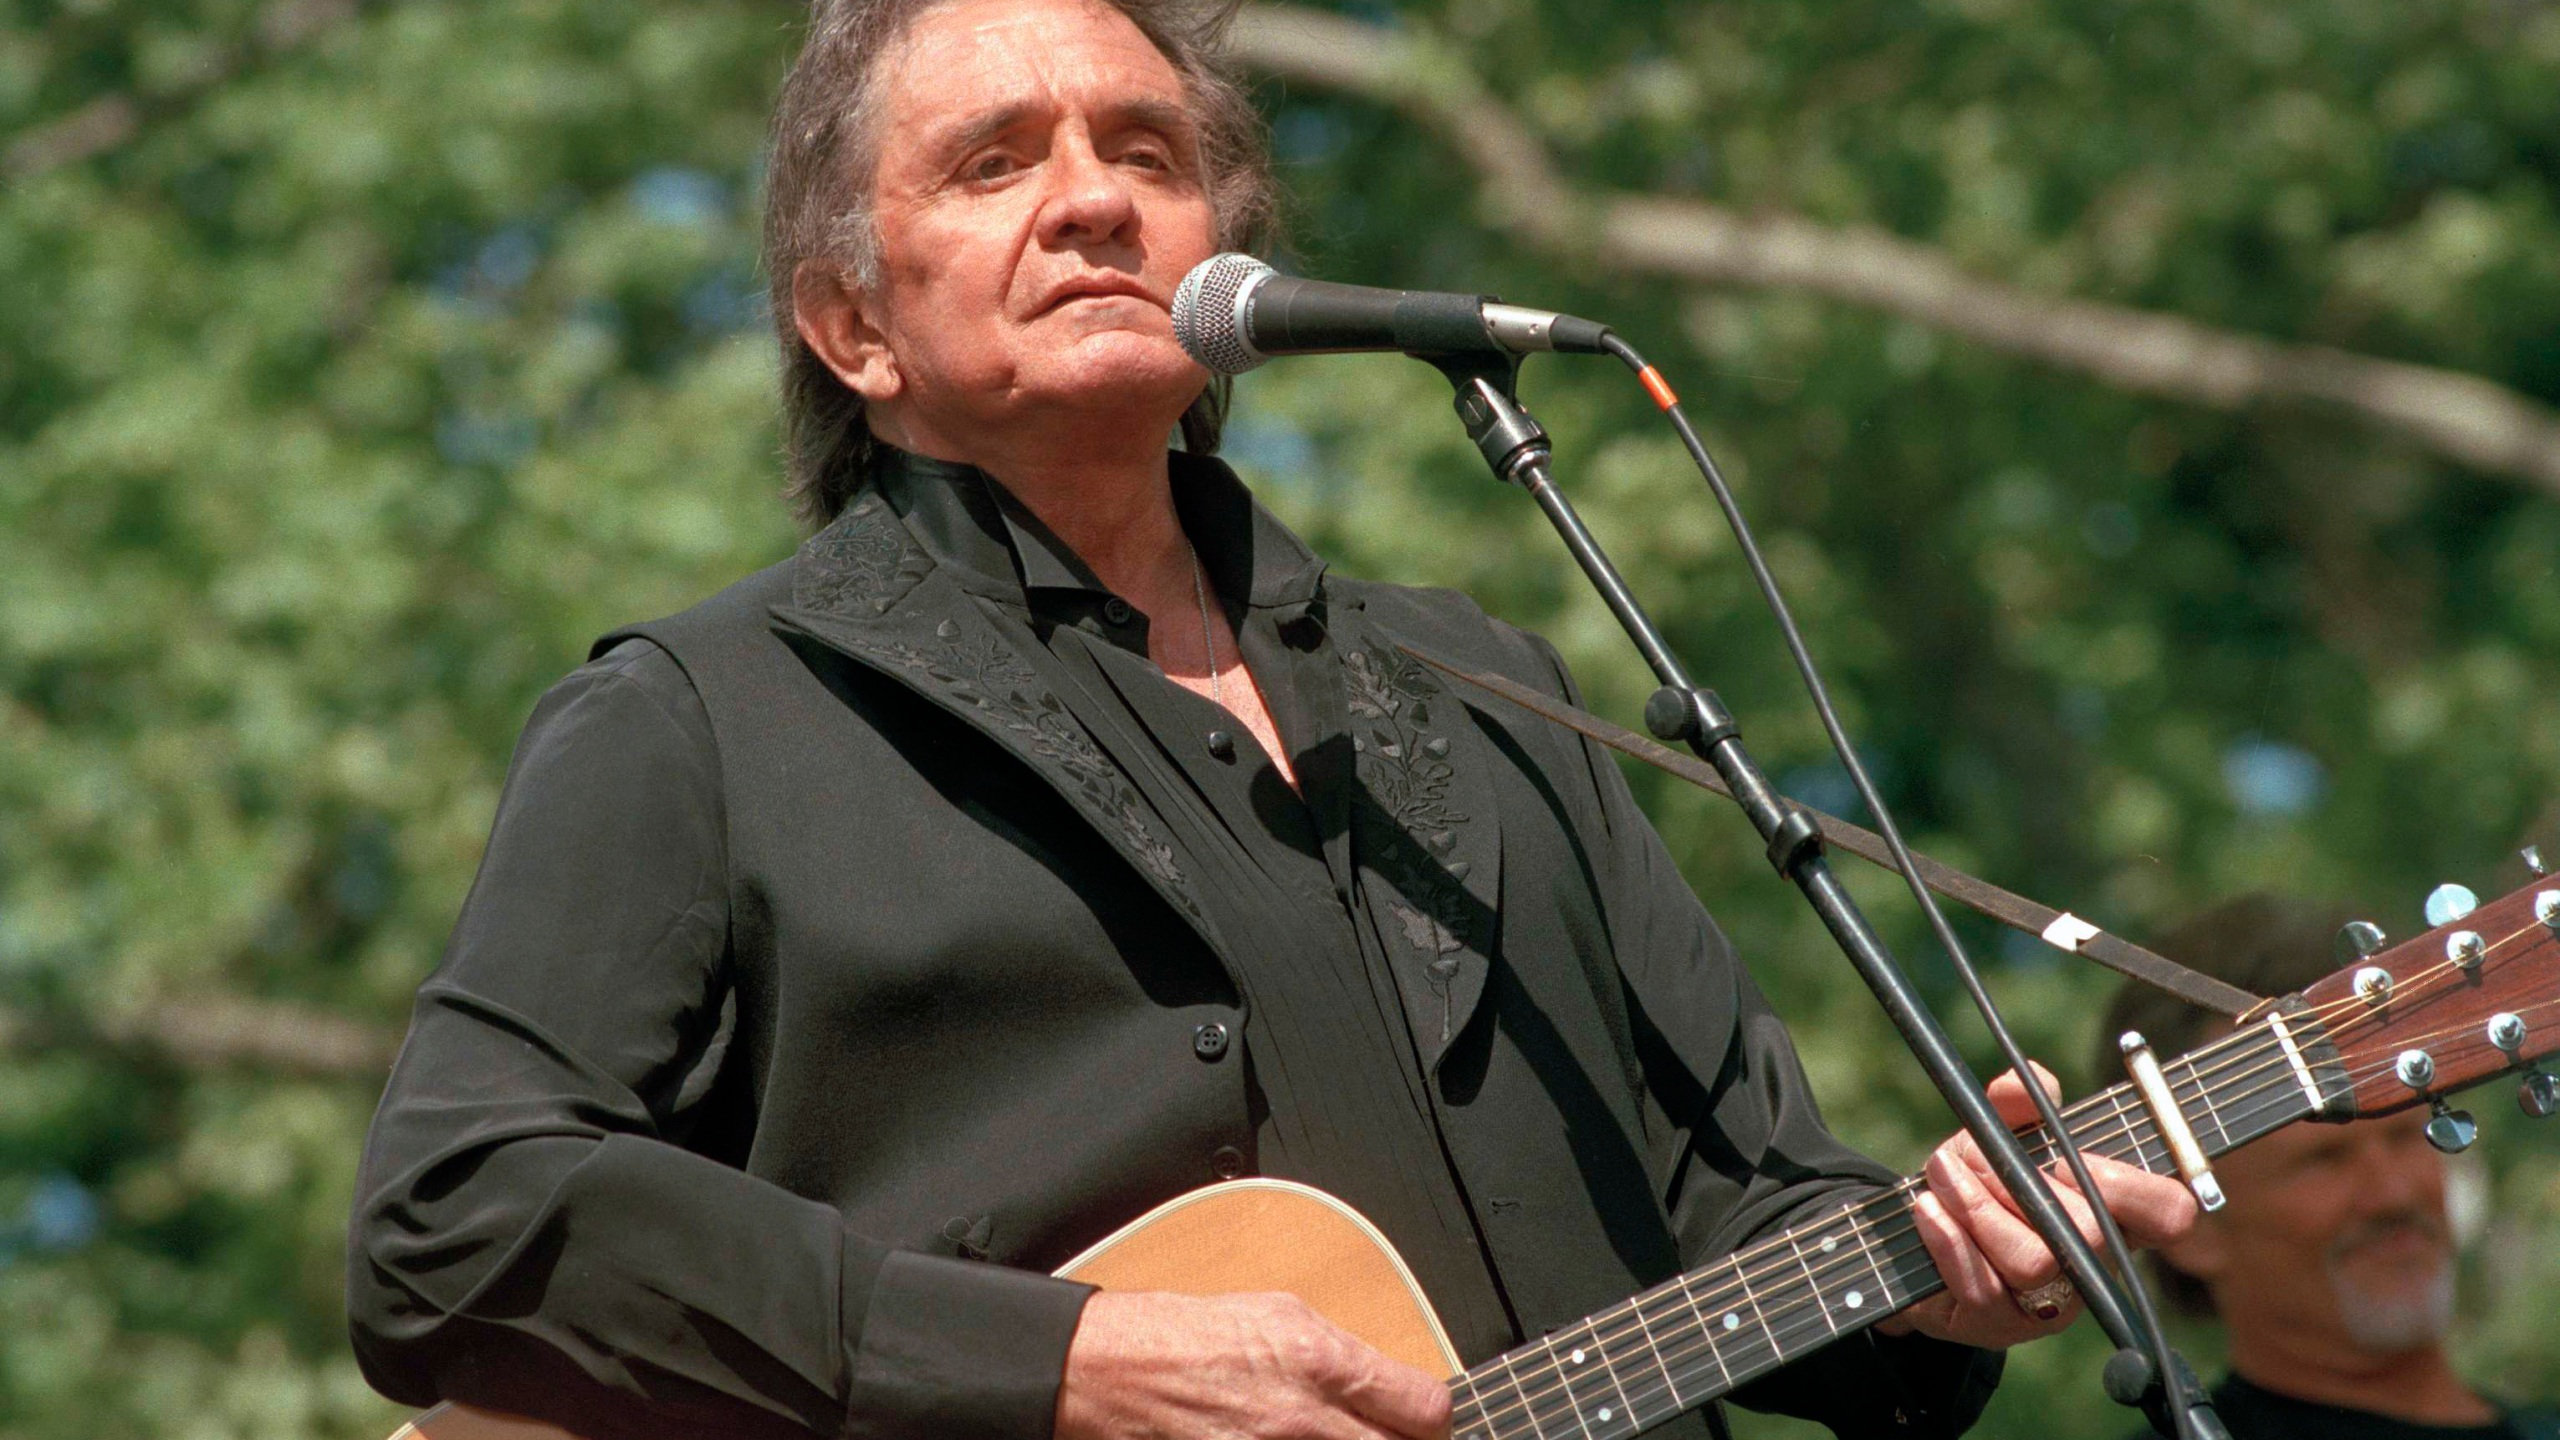 Johnny_Cash-Record_62590-159532.jpg43508824